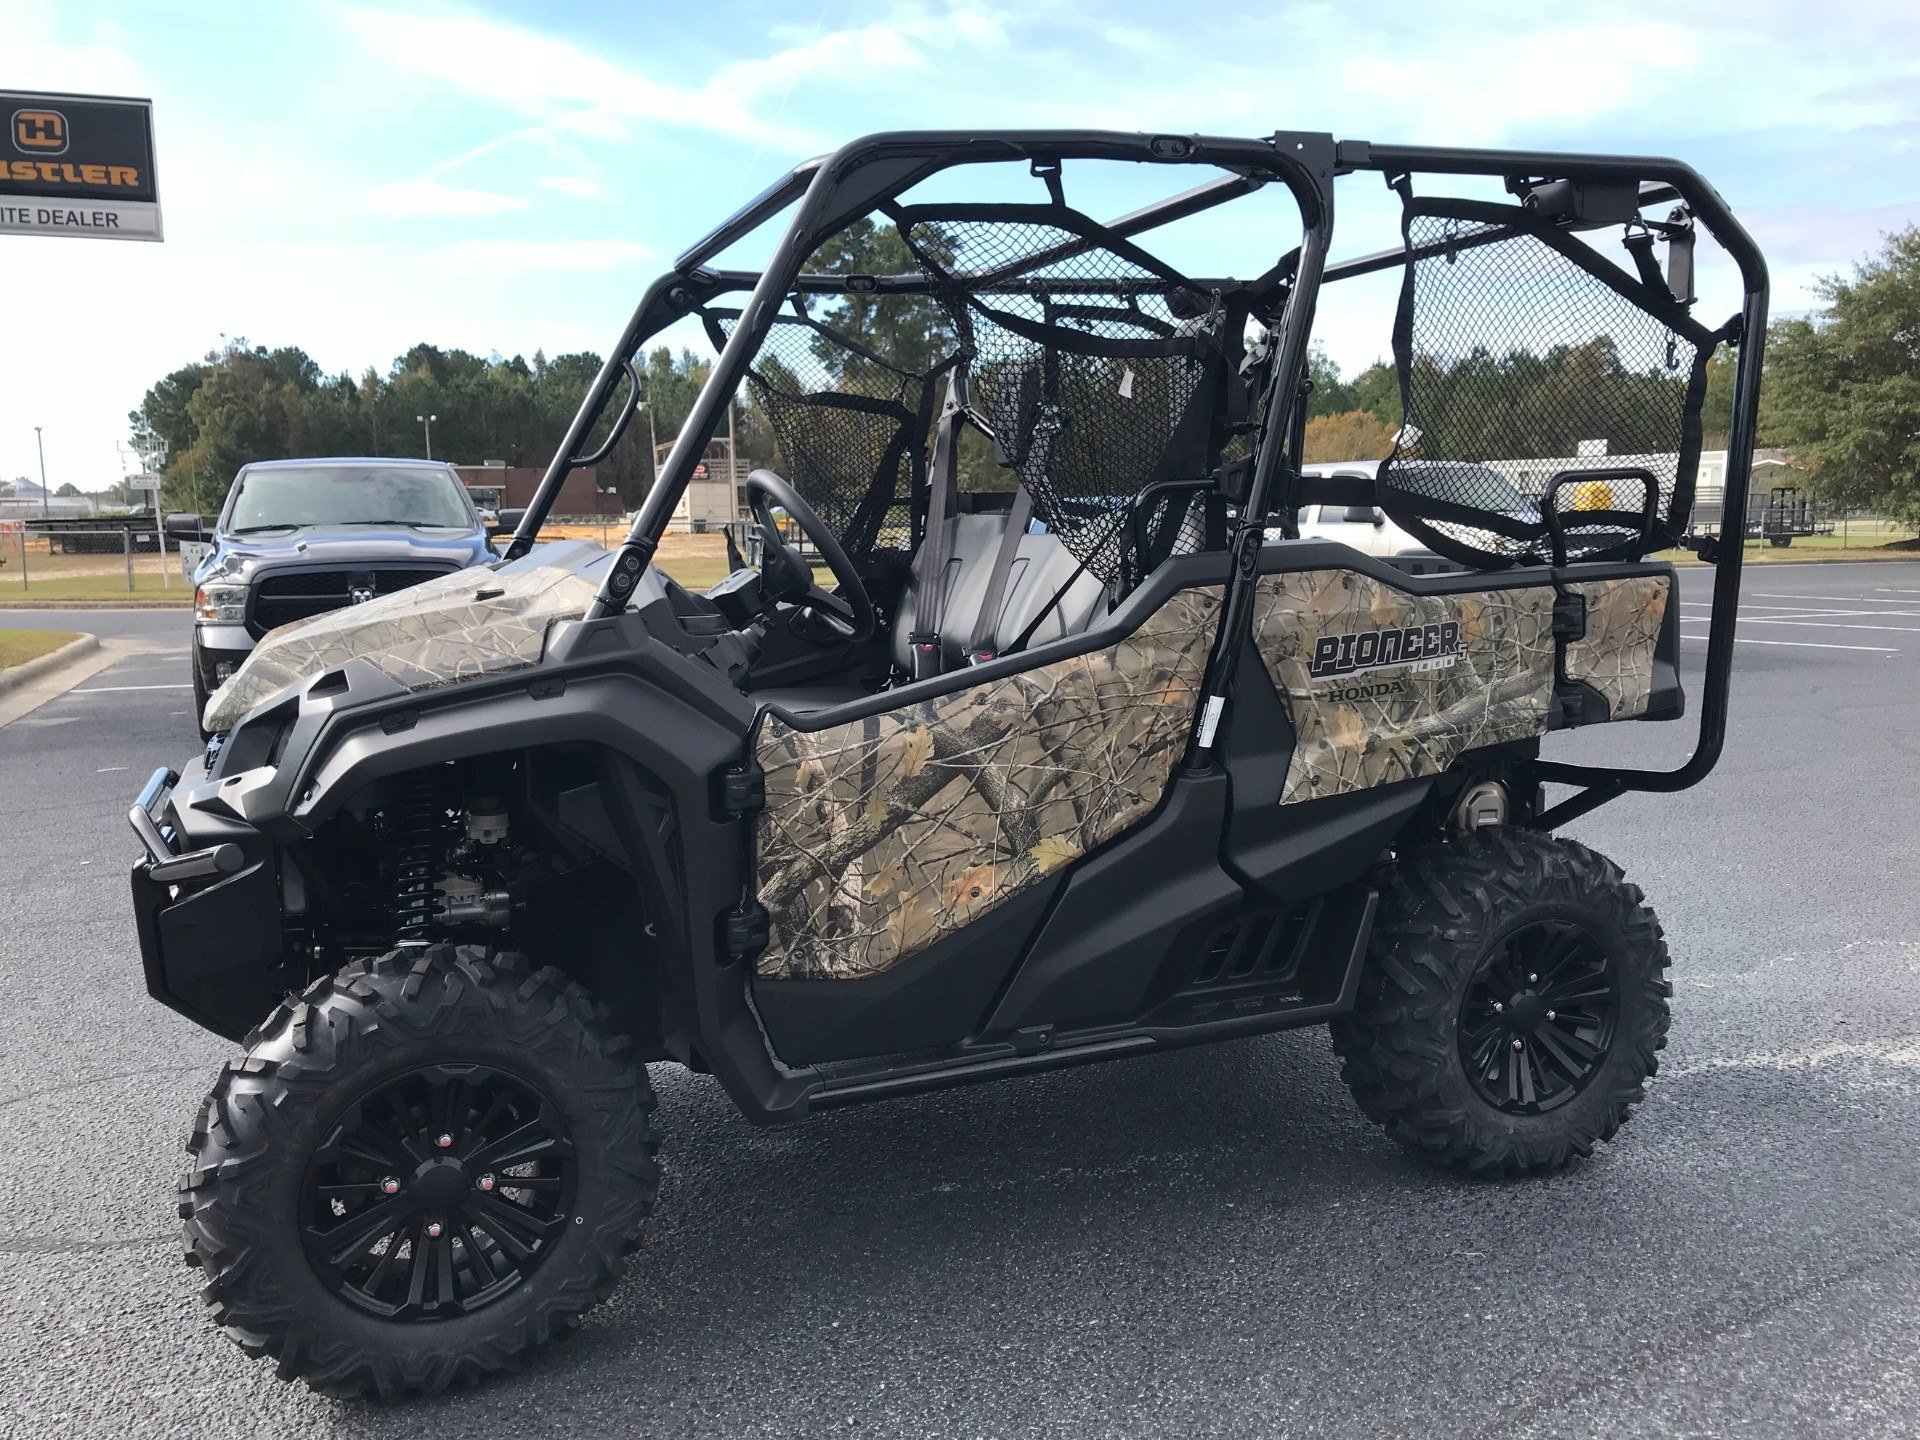 2019 Honda Pioneer 1000-5 Deluxe in Greenville, North Carolina - Photo 8